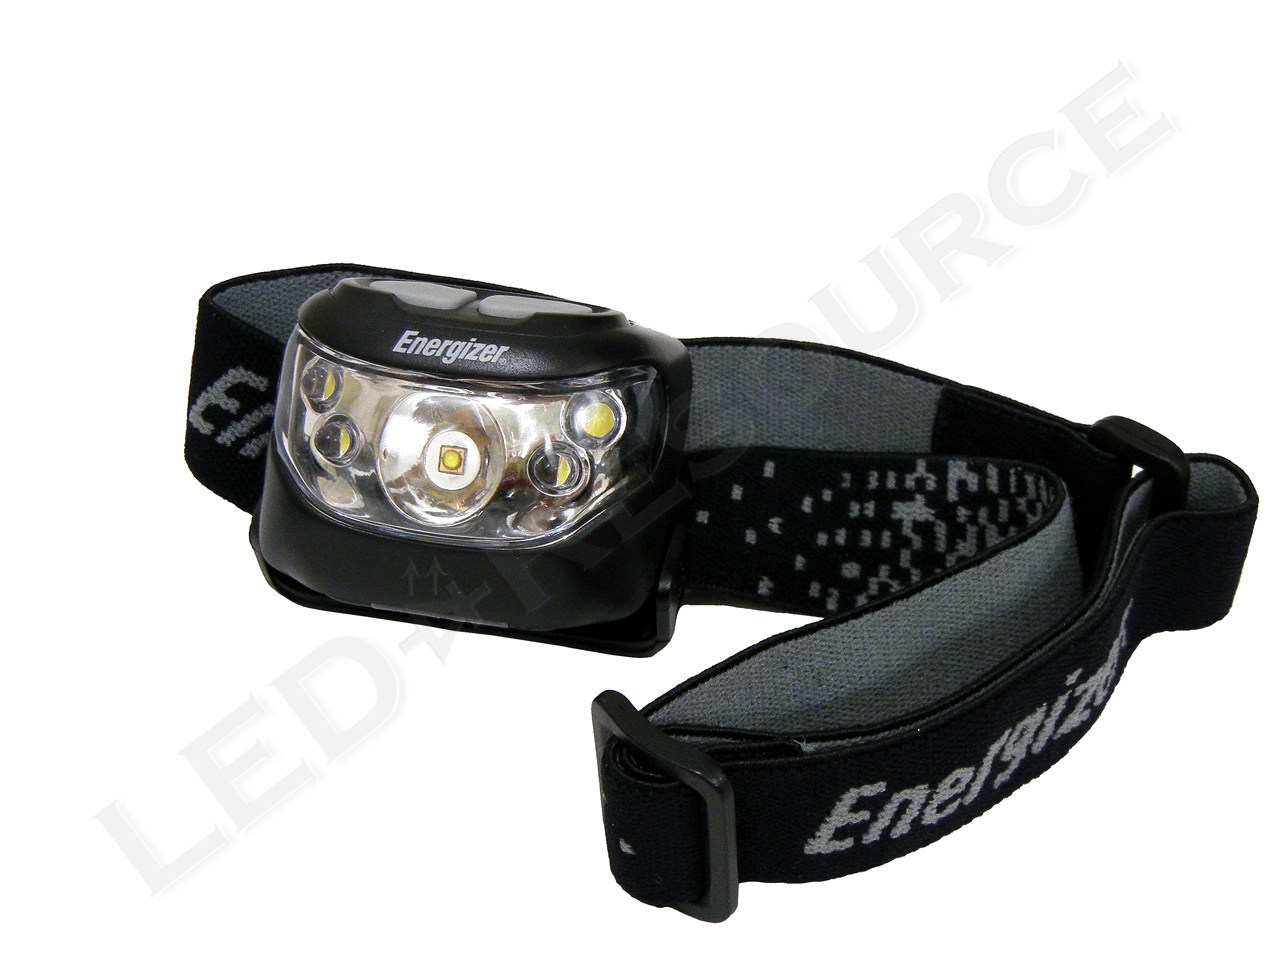 Energizer High Performance Headlight Review